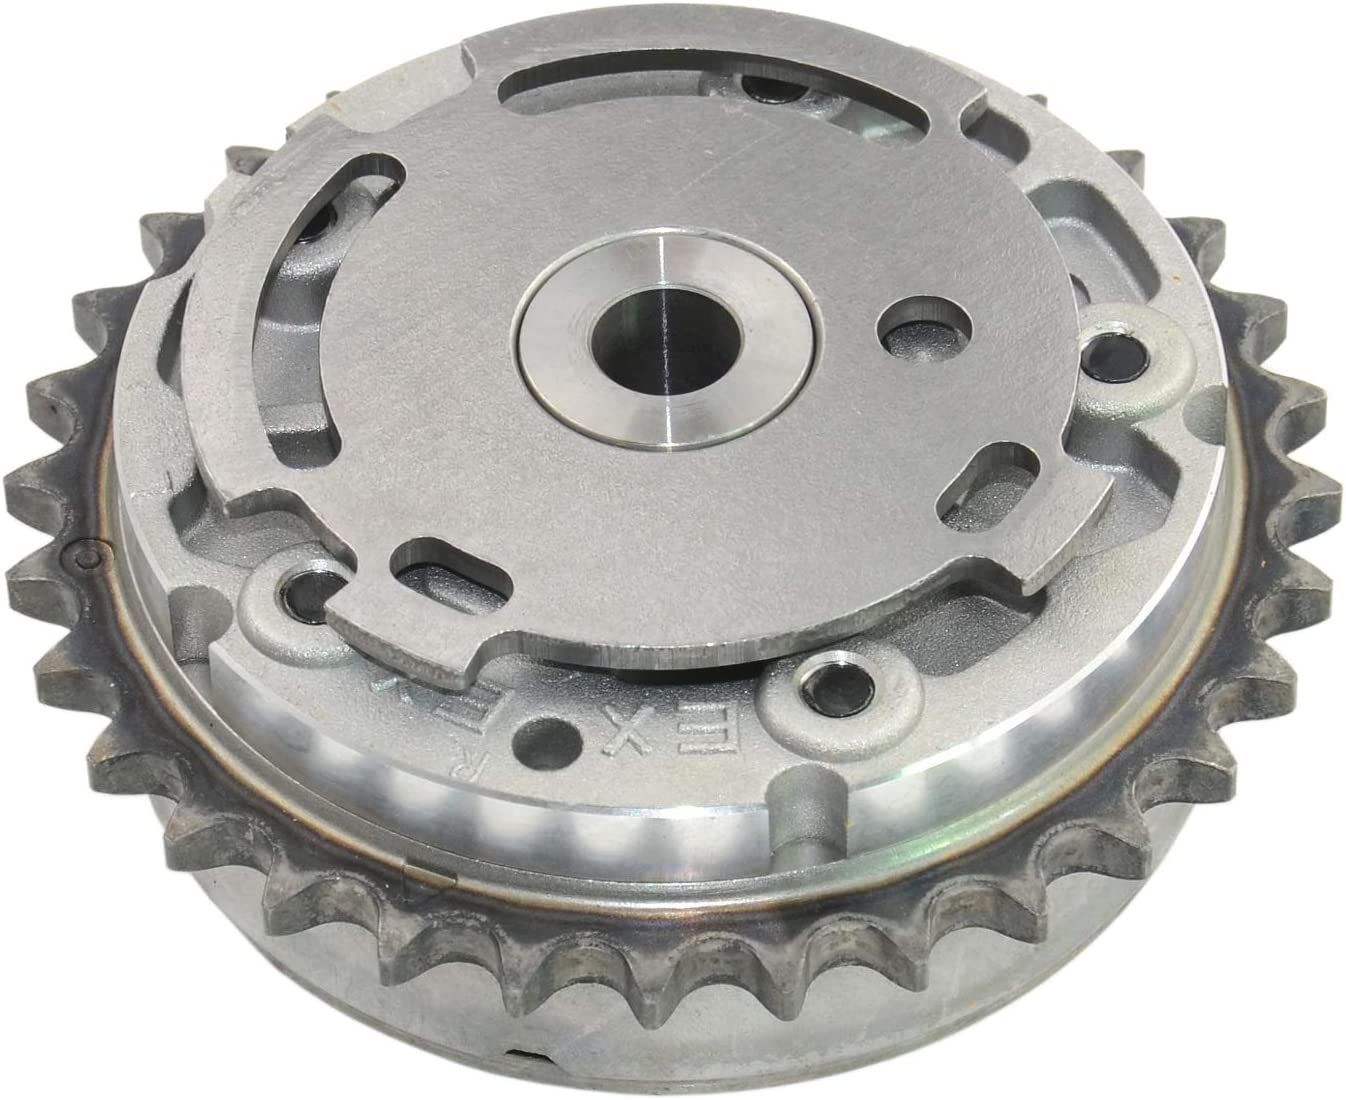 EXHAUST CAMSHAFT ACTUATOR Sprocket Gear 12 Cadillac GM Buick Large-scale Wholesale sale for